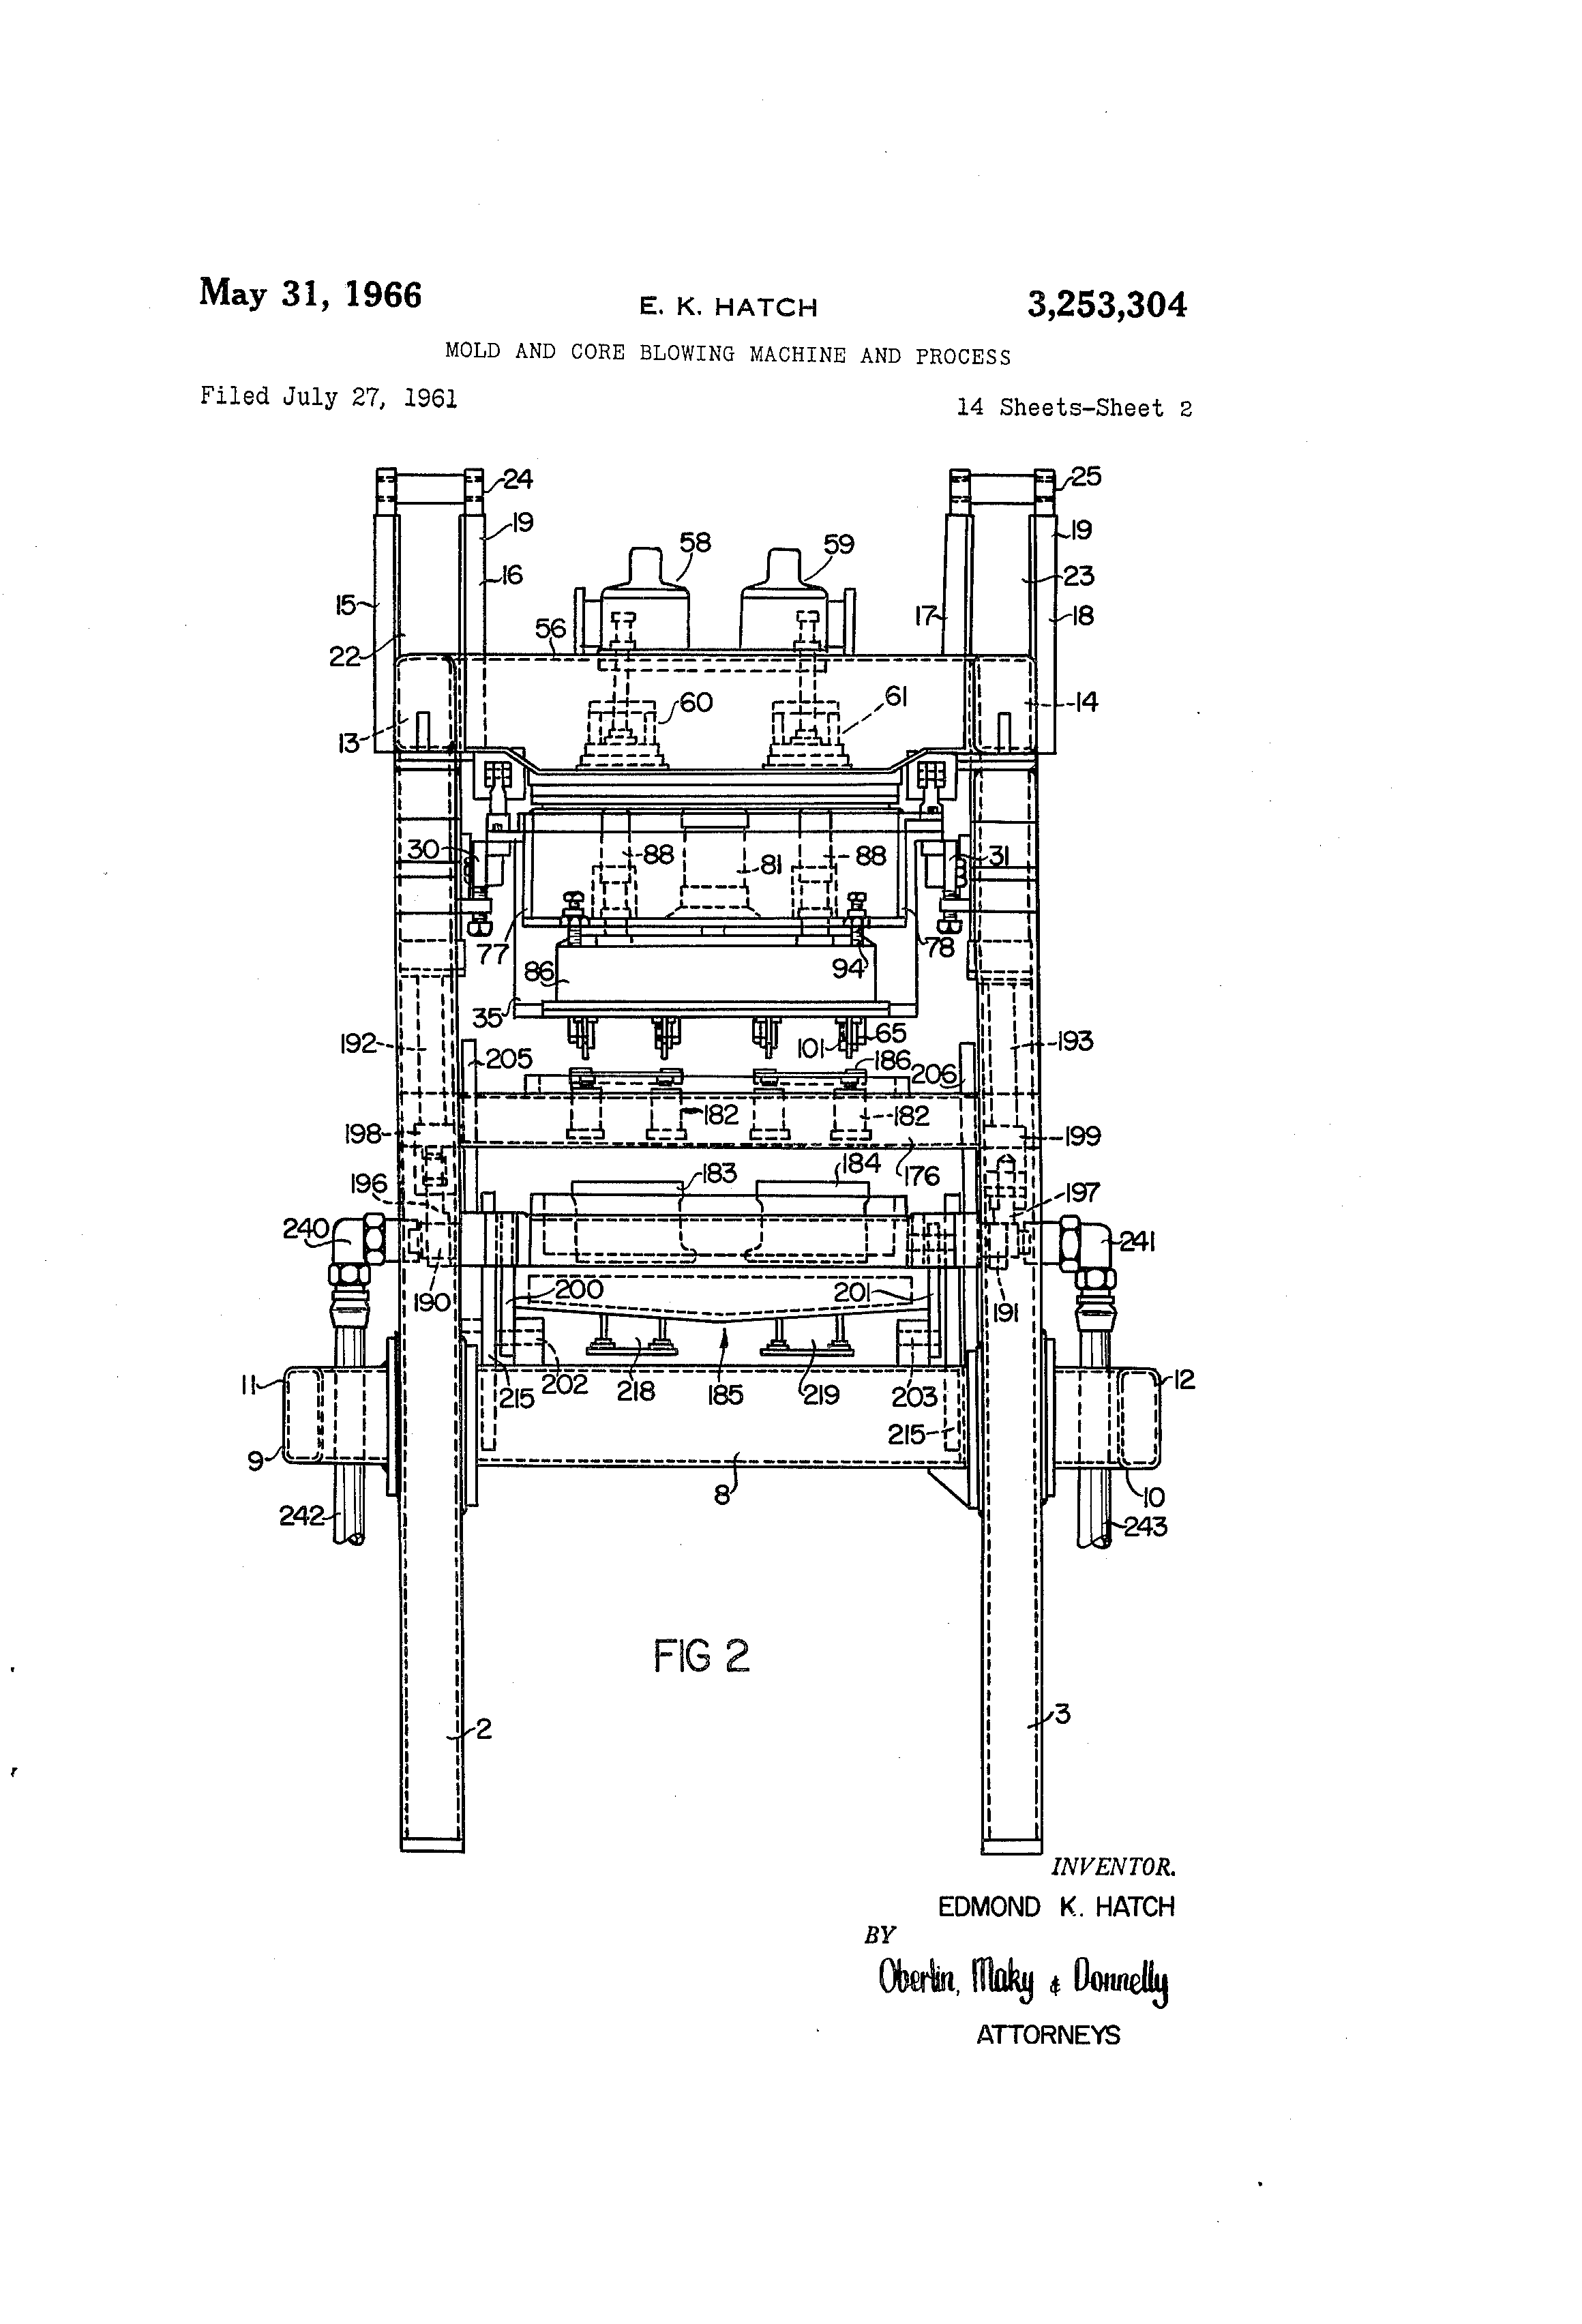 US3253304 1 patent us3253304 mold and core blowing machine and process  at mr168.co